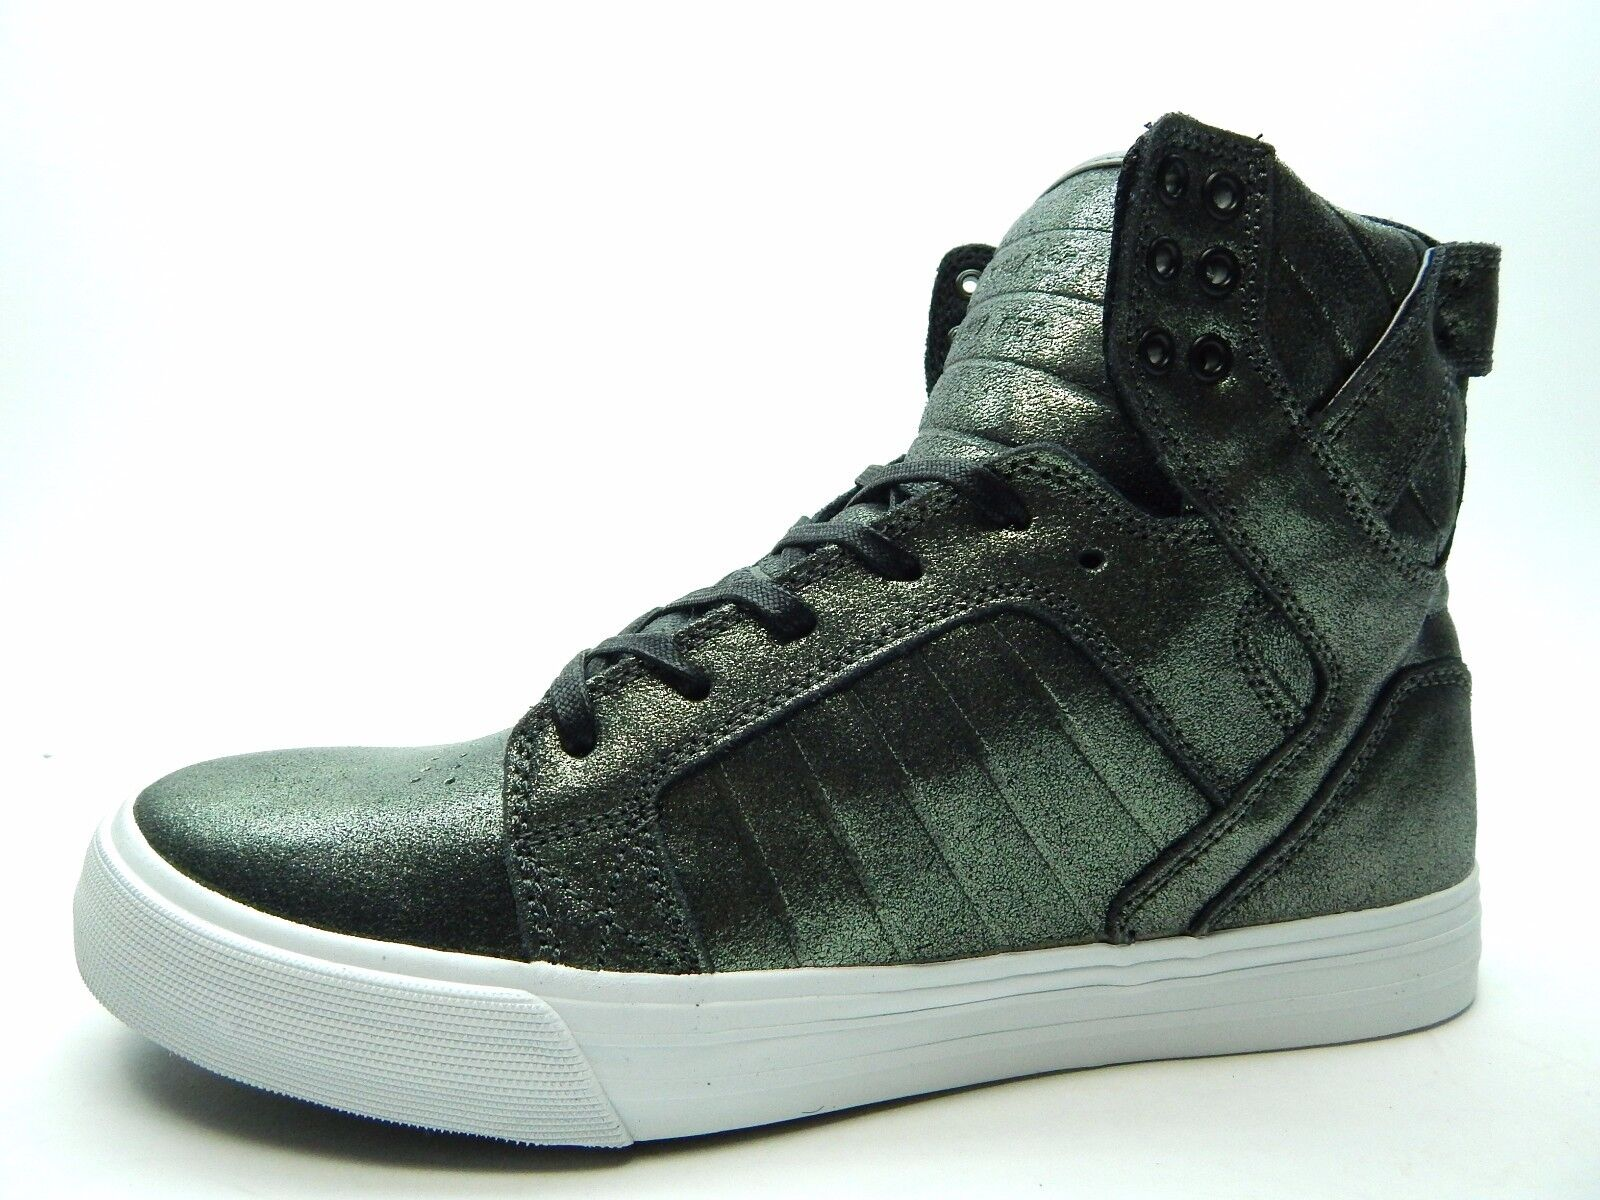 SUPRA SKYTOP PEWTER METALIC WHITE Uomo SHOES SIZE 8.5 TO 14  S18259